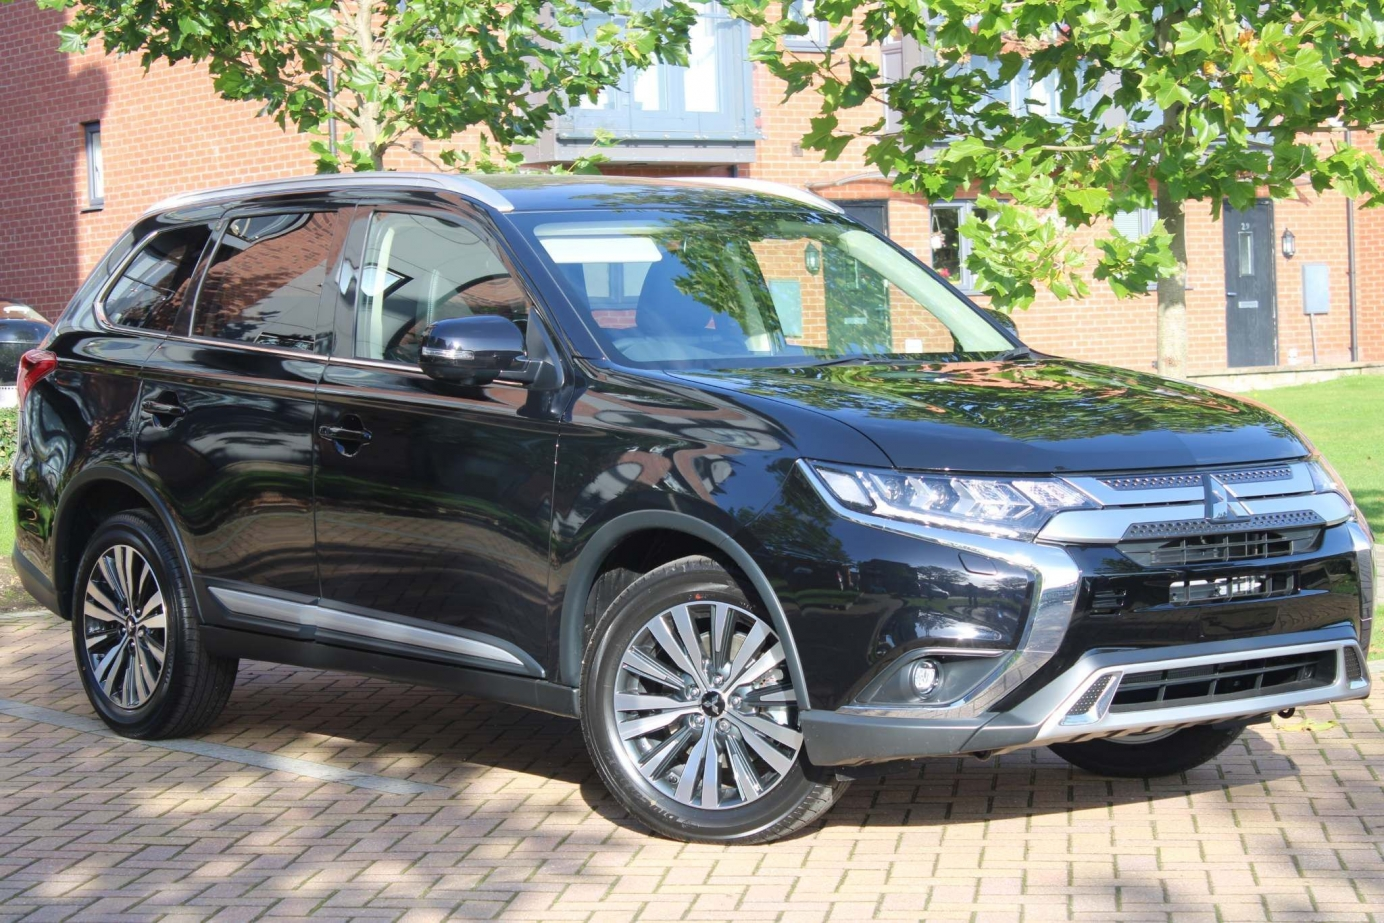 Mitsubishi Outlander Exceed 4WD Auto 0% Finance